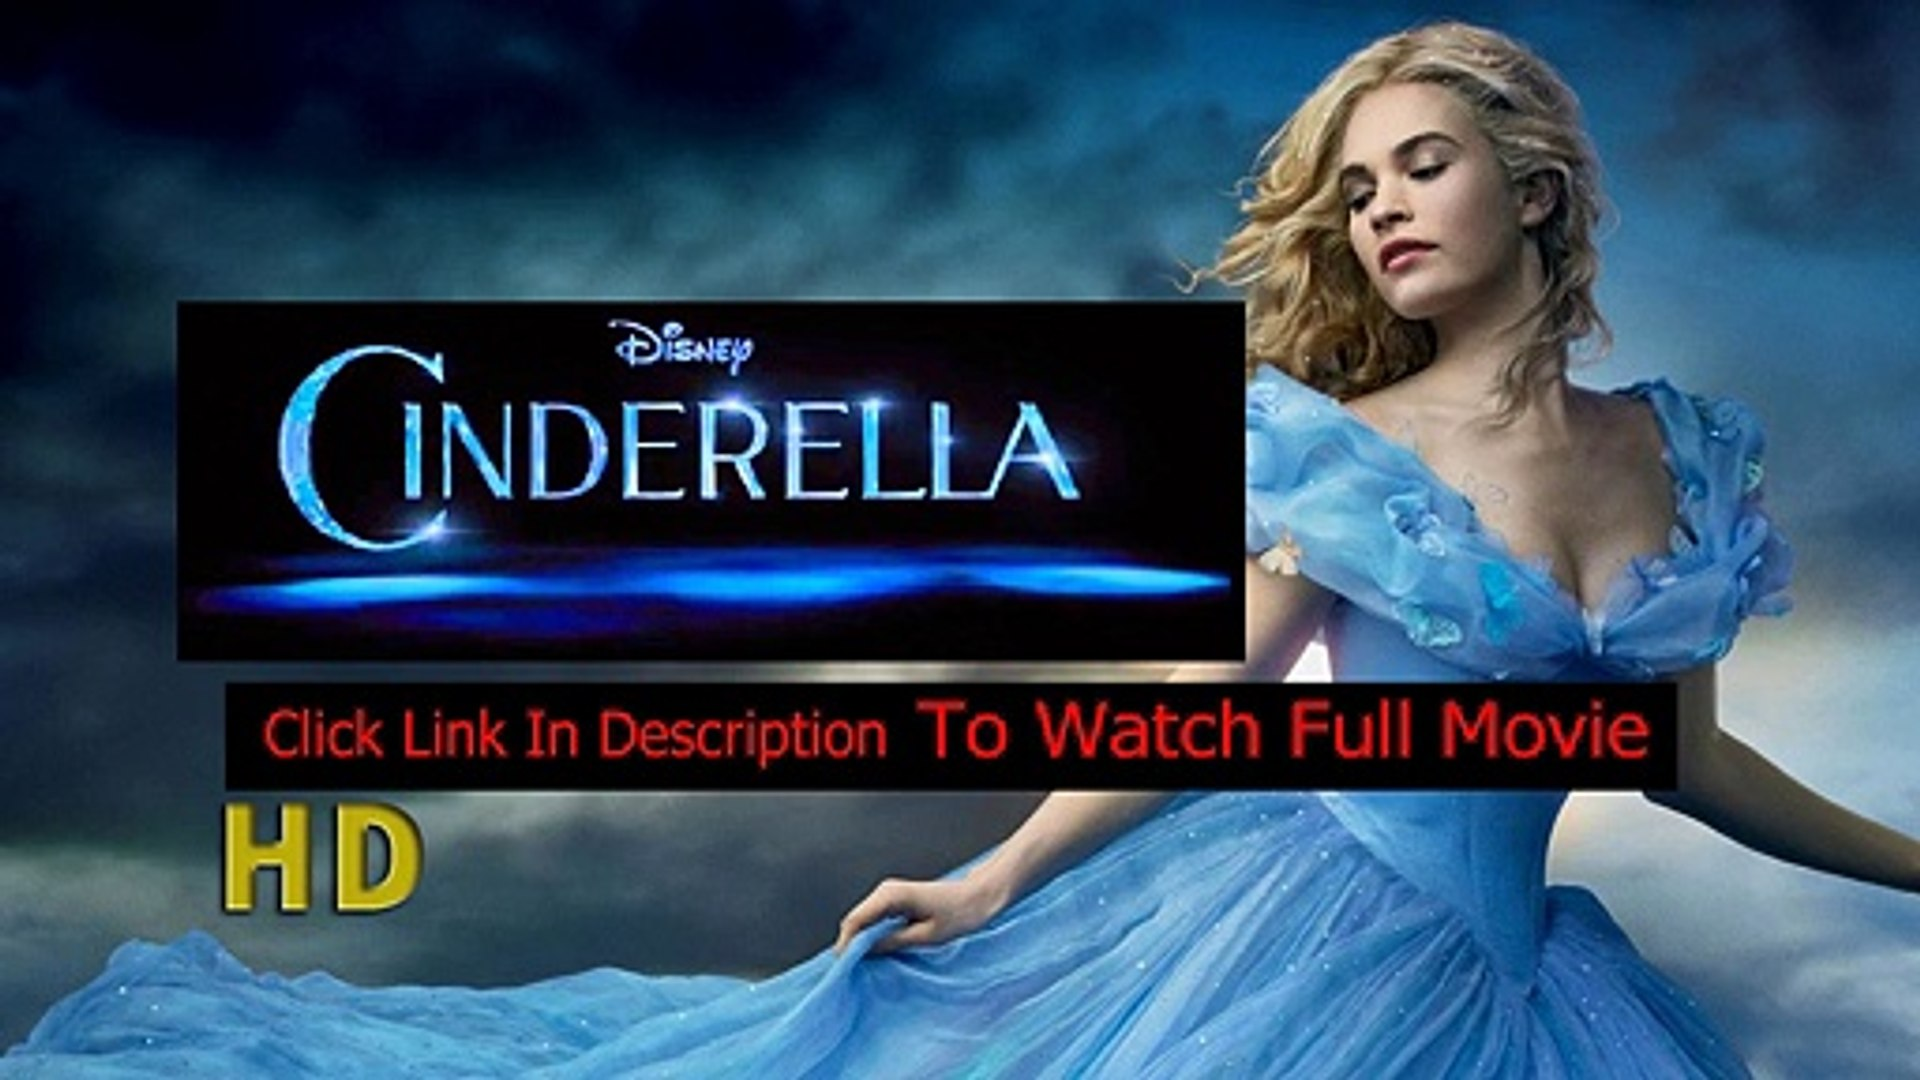 cinderella disney full movie online free